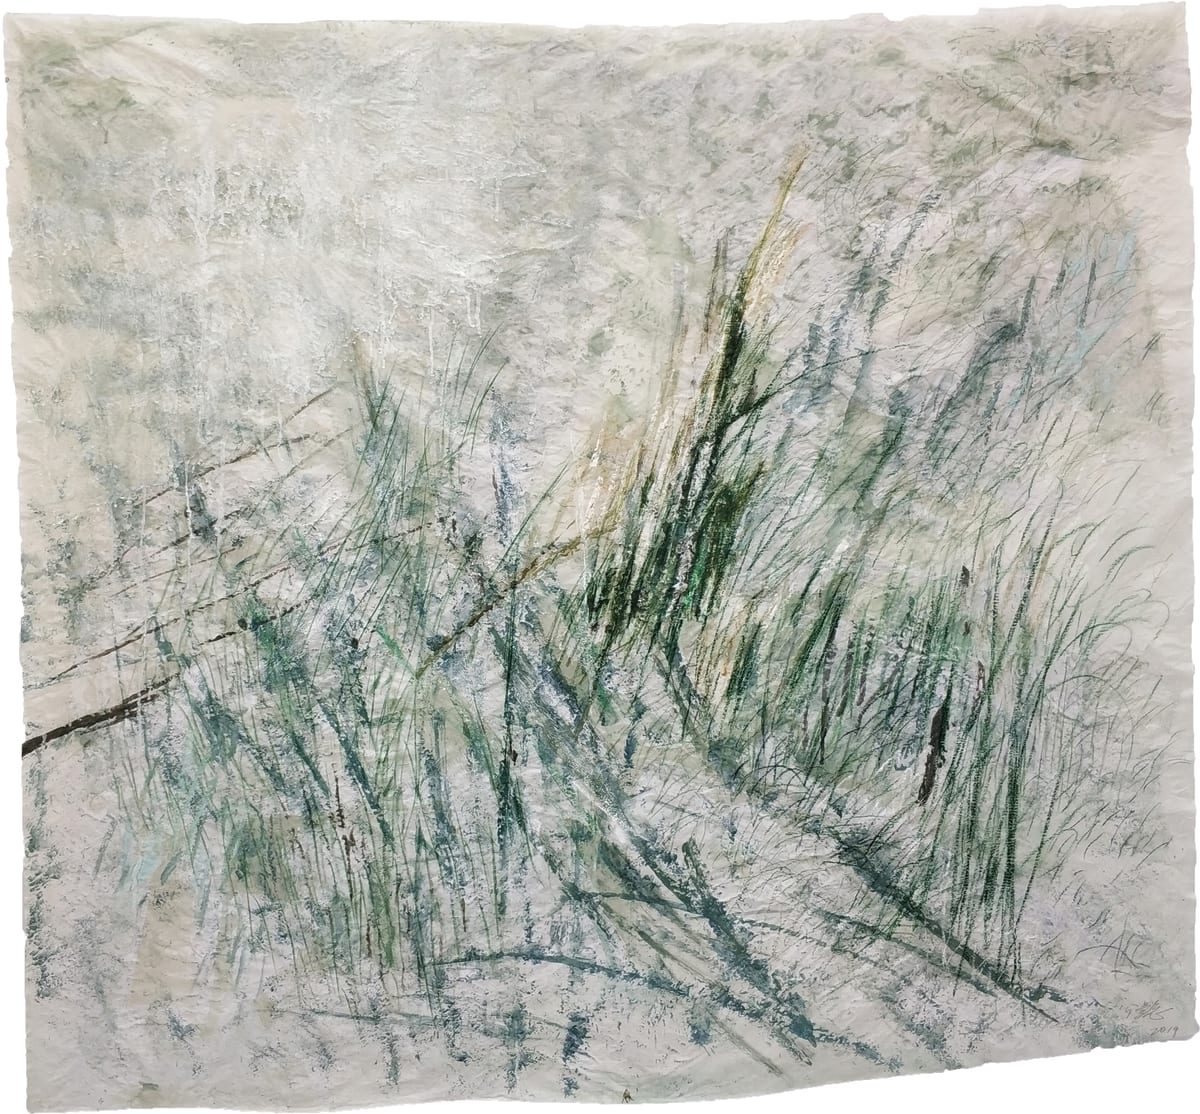 Wang Gongyi 王公懿, Leaves of Grass No.5 草葉集之五, 2019